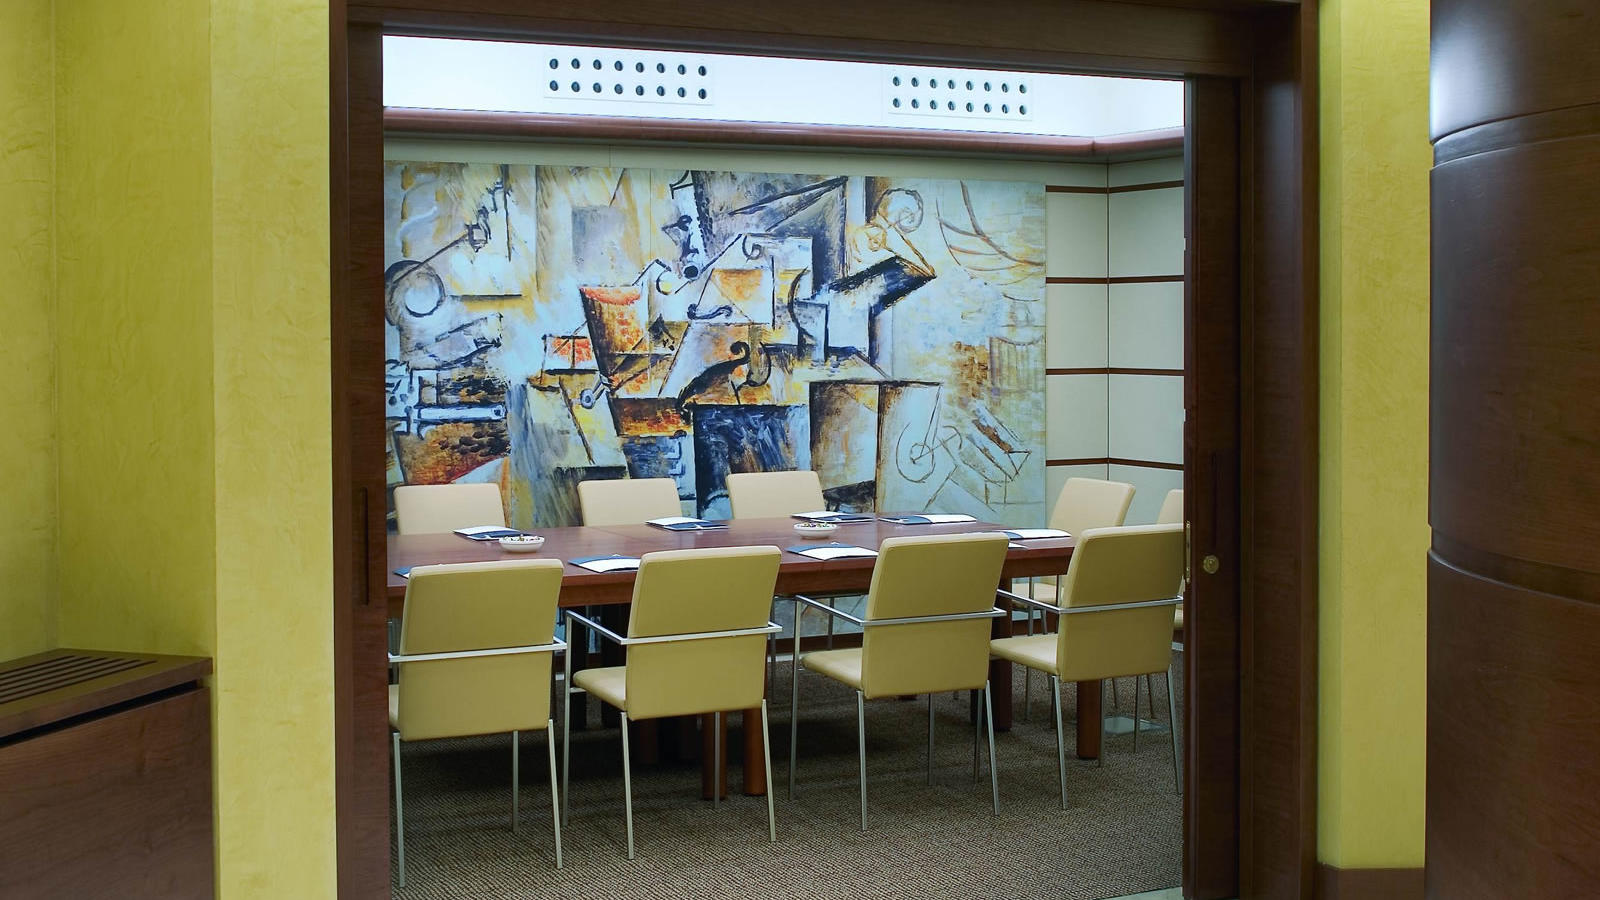 Picasso meeting room